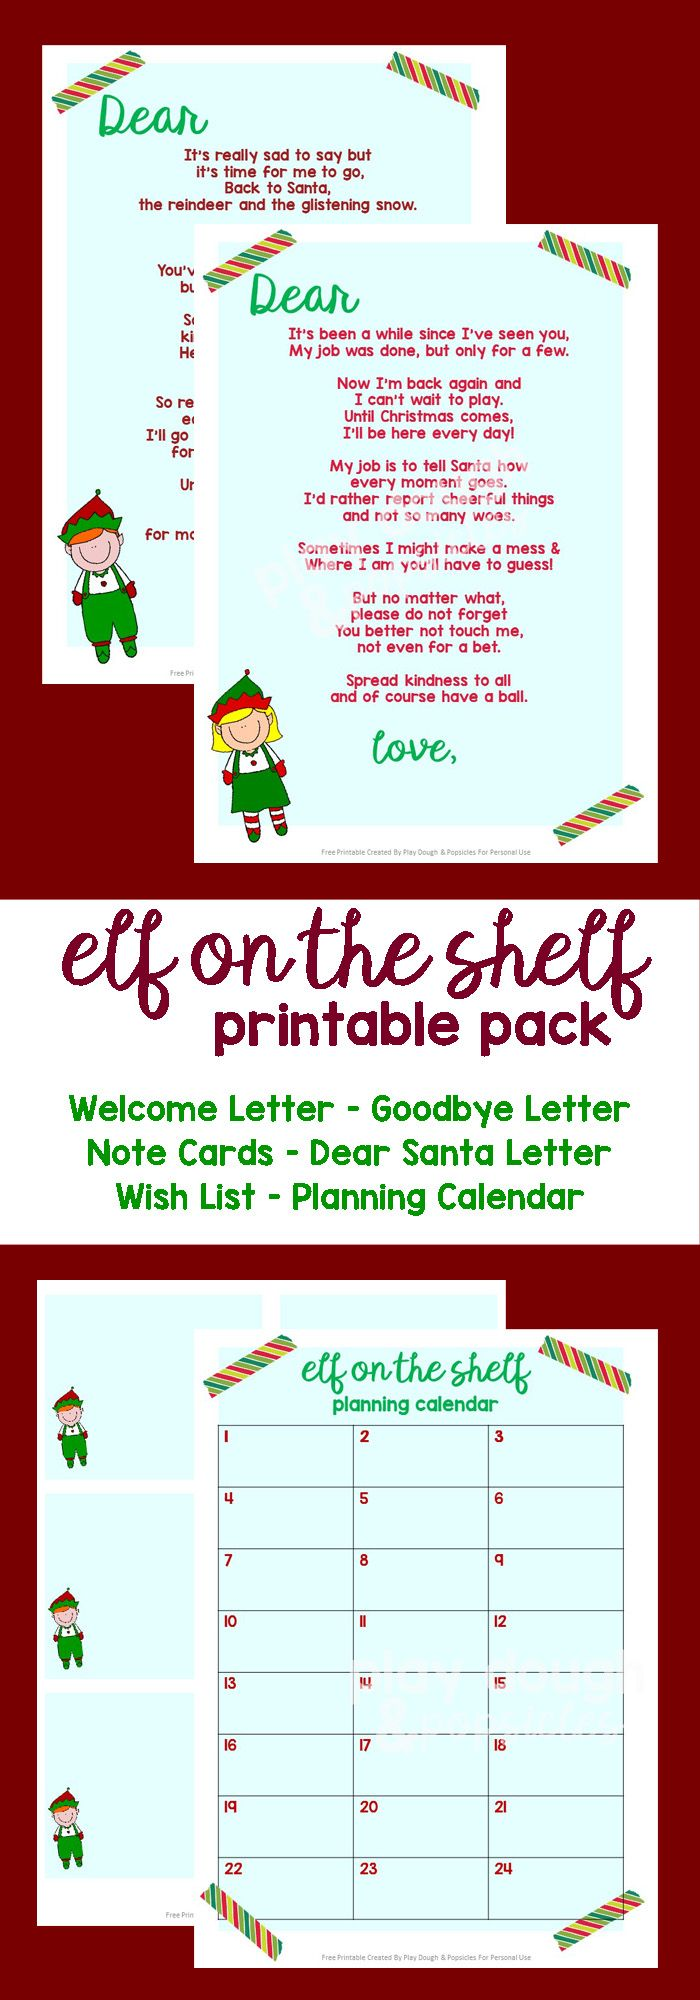 Elf On A Shelf 9 Page Printable Pack. Includes: Welcome & Goodbye Letters, Note Cards, Dear Santa Letter, Wish List, and Planning Calendar (for Mom and Dad).